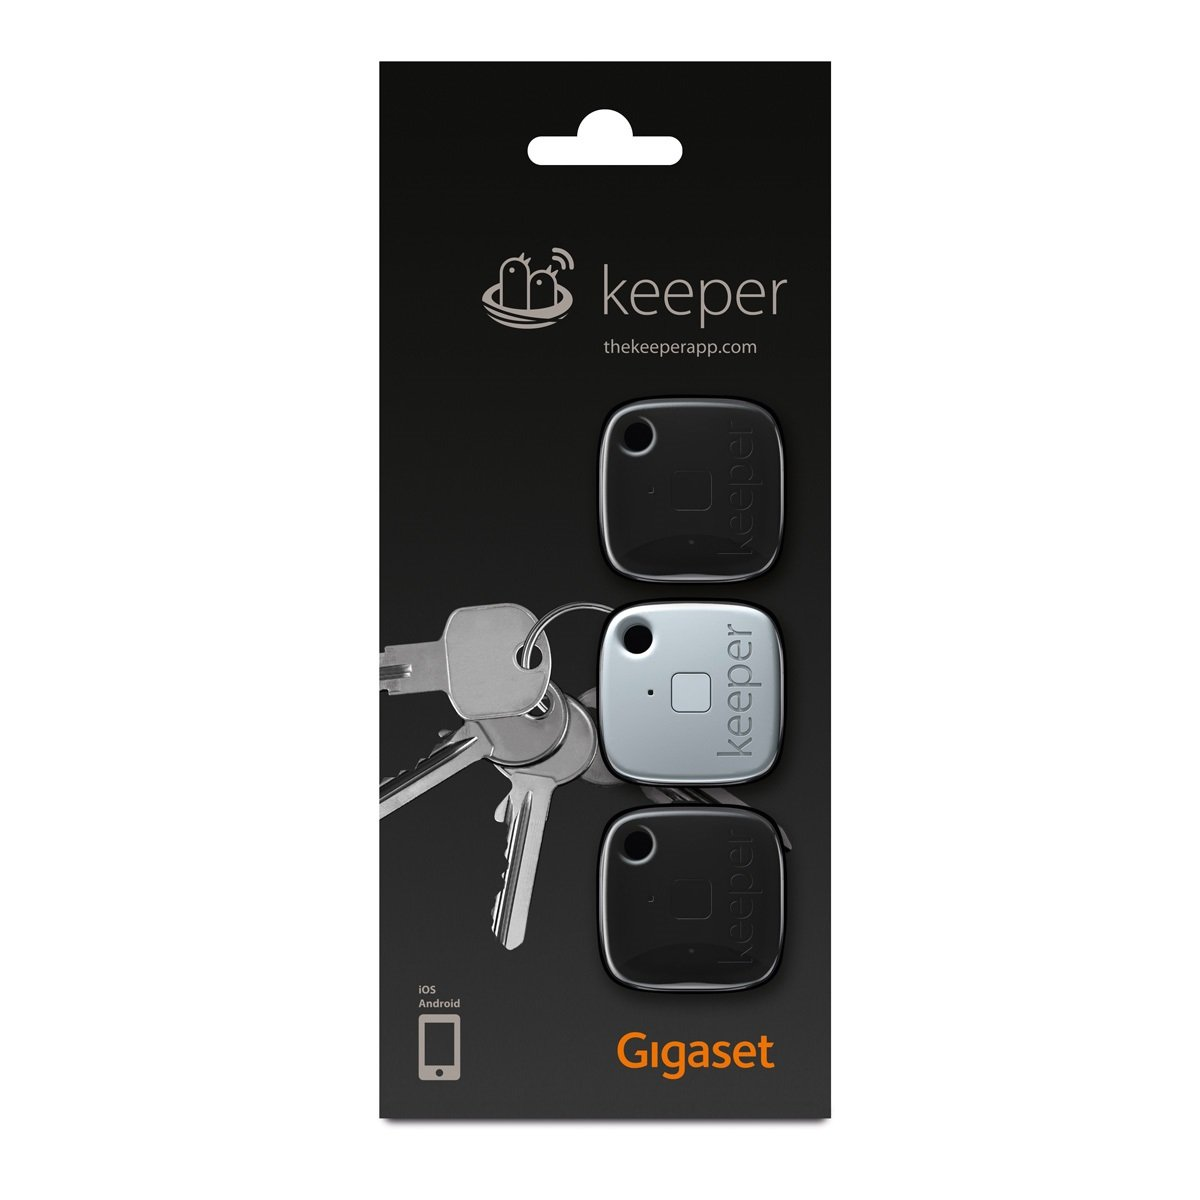 Gigaset Keeper Bluetooth Negro, Blanco - Localizadores de Llaves (Negro, Blanco, IPX7, 37 mm, 9,2 mm, 37 mm, 12 g)